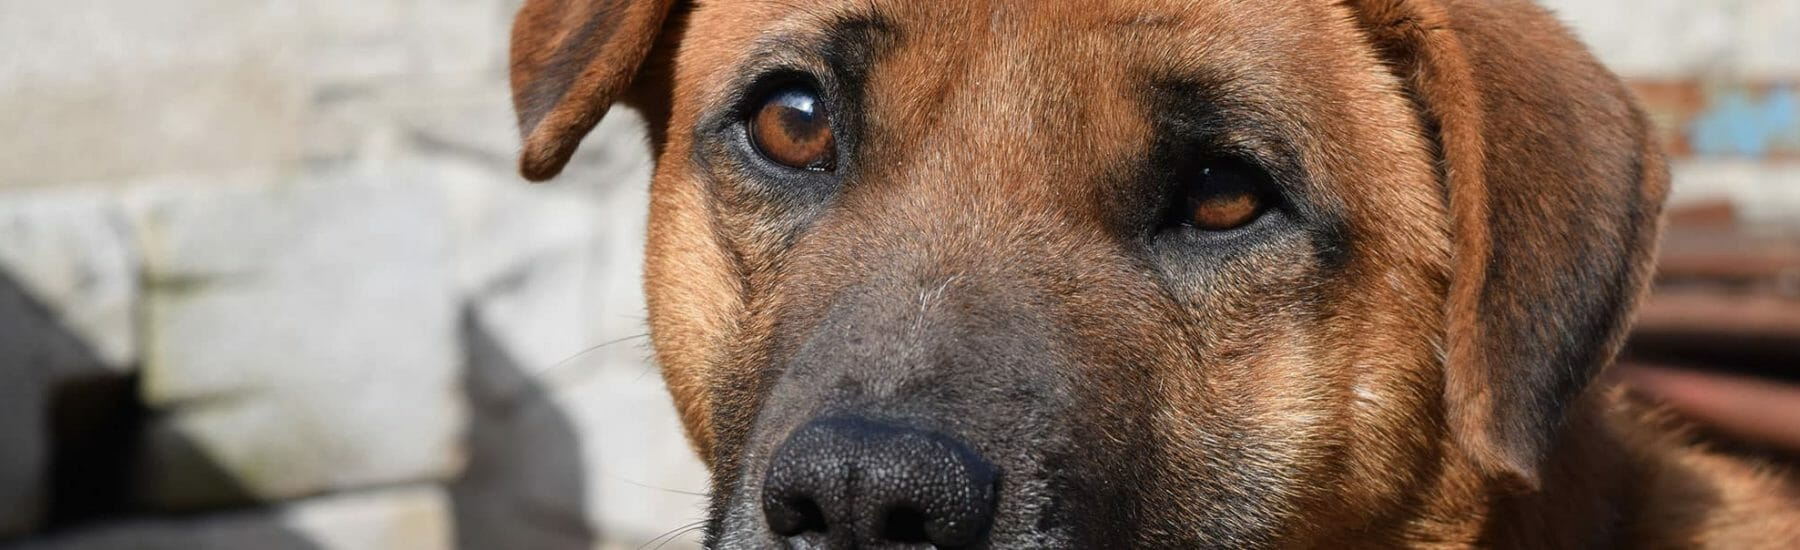 Closeup of brown dog's face